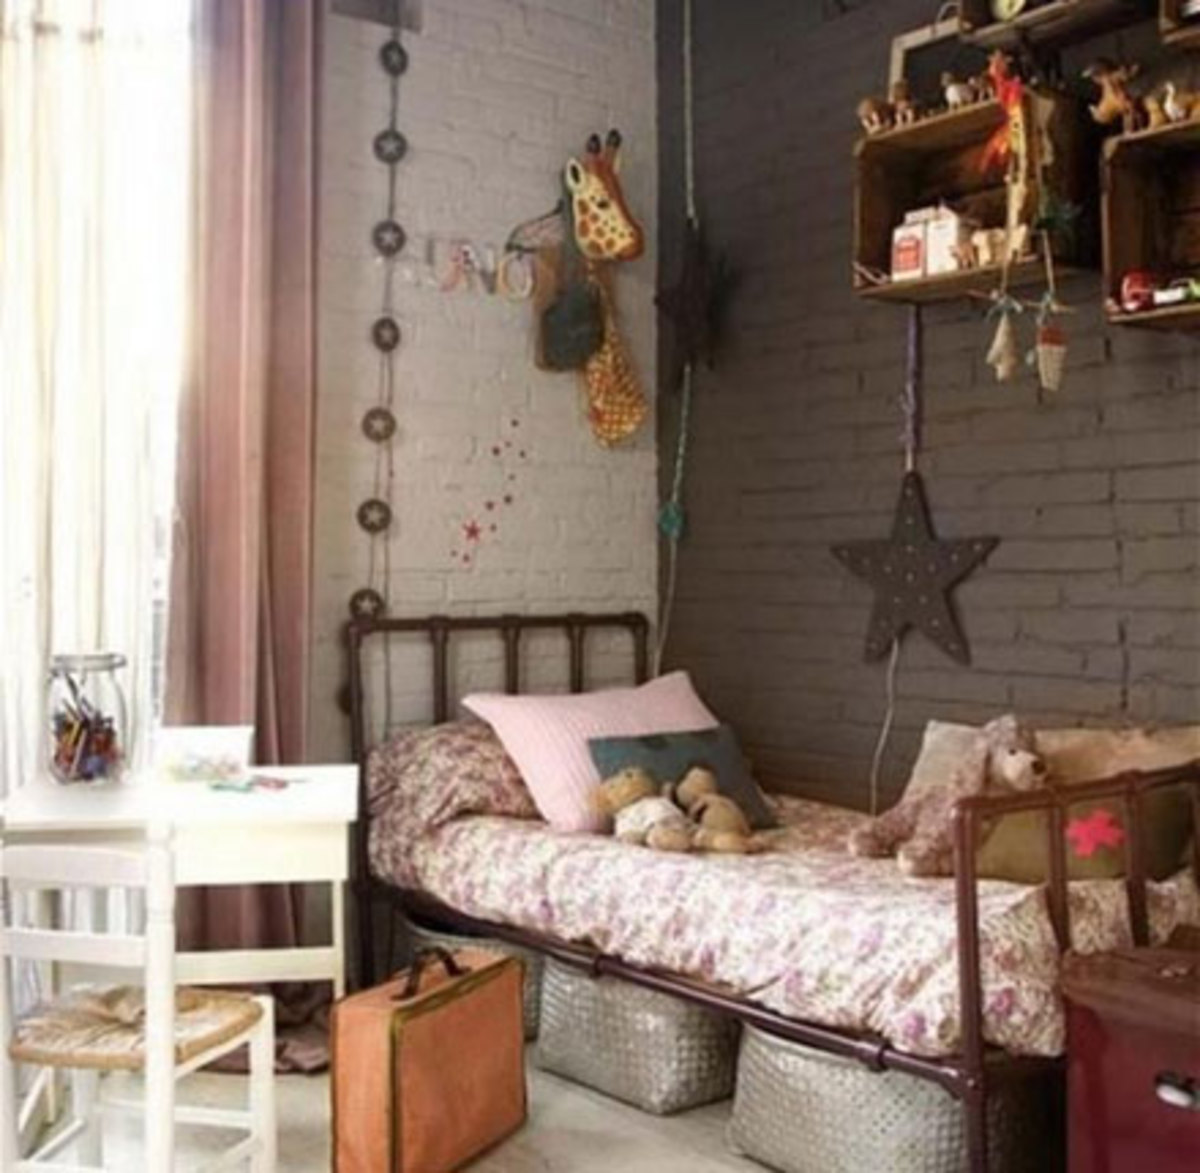 DIY Teen Girl Bedroom Decorating Ideas   Decor Ideas for Girls Room. 20 Teenage Girl Bedroom Decorating Ideas   HubPages